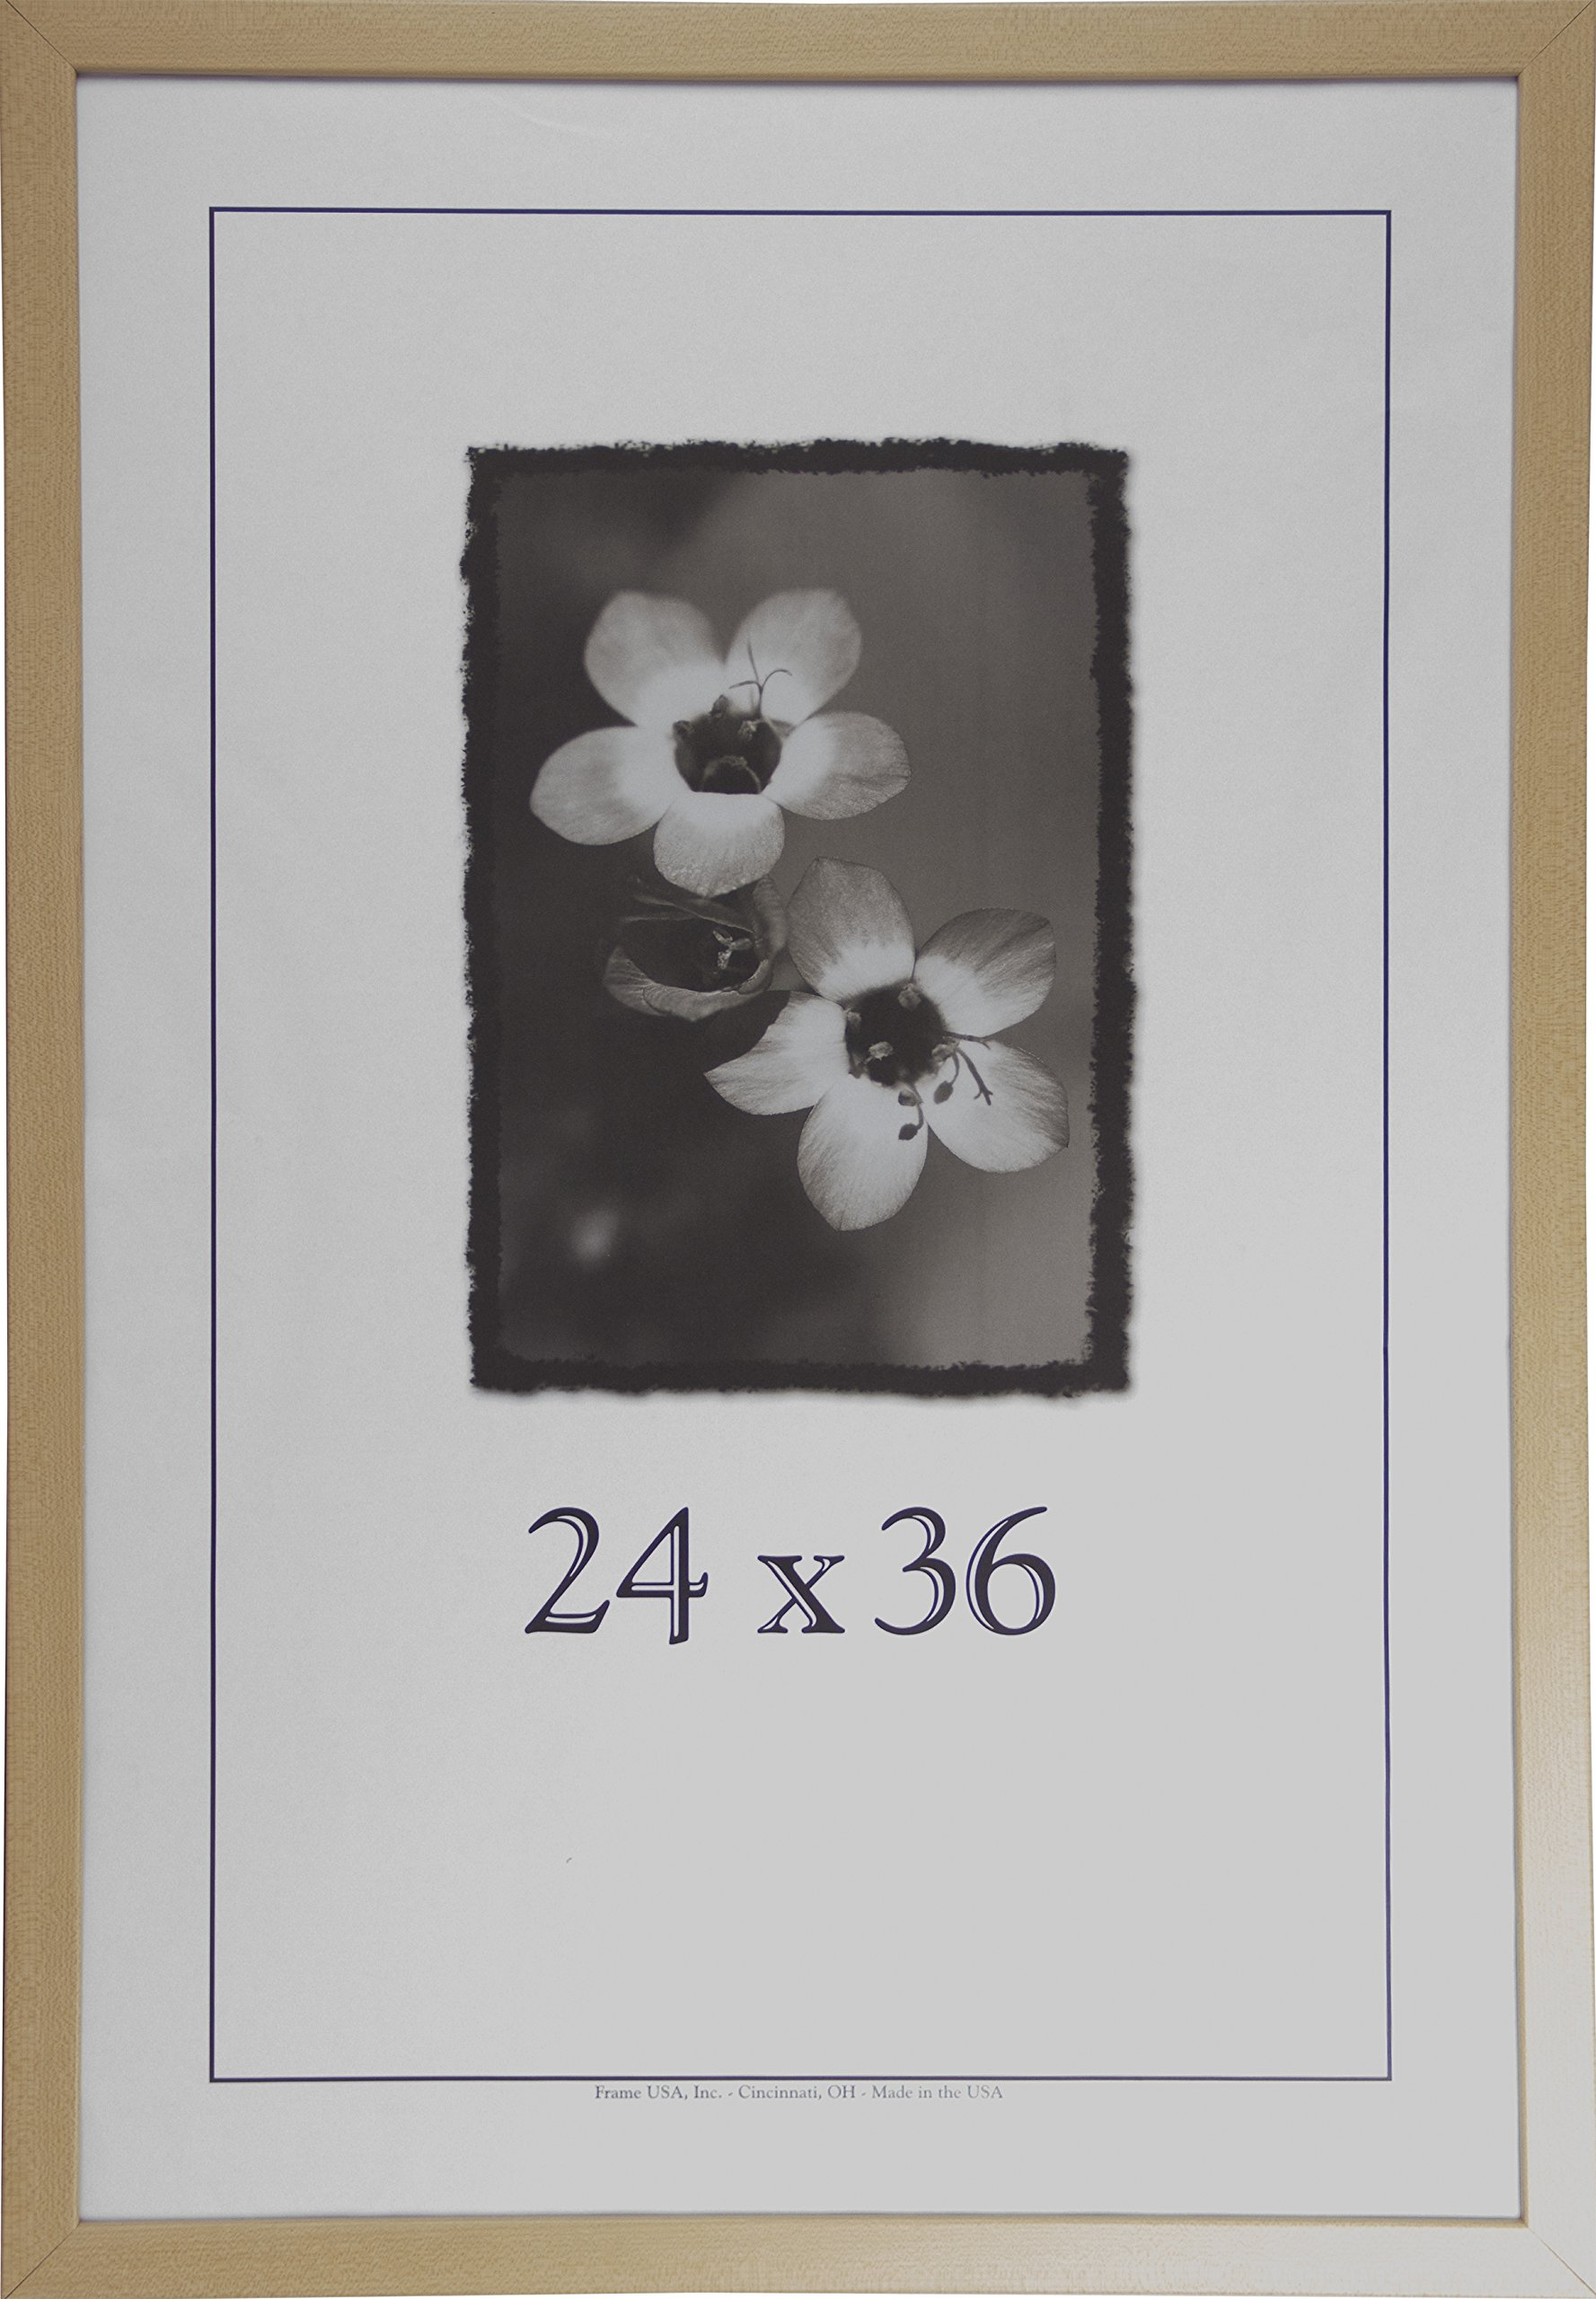 24x36 Wood Picture Frame (American Maple) - Made in the USA